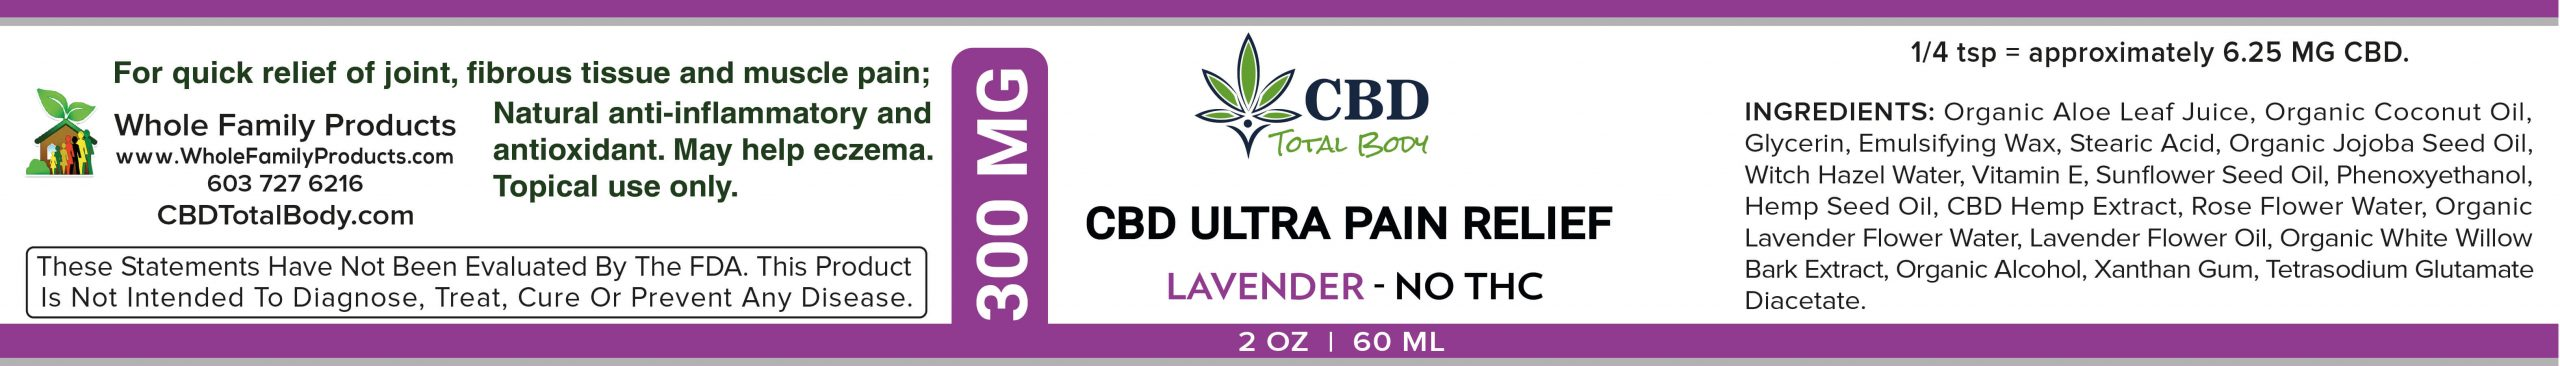 CBD Ultra Pain Relief Lavender 2oz Cream Label